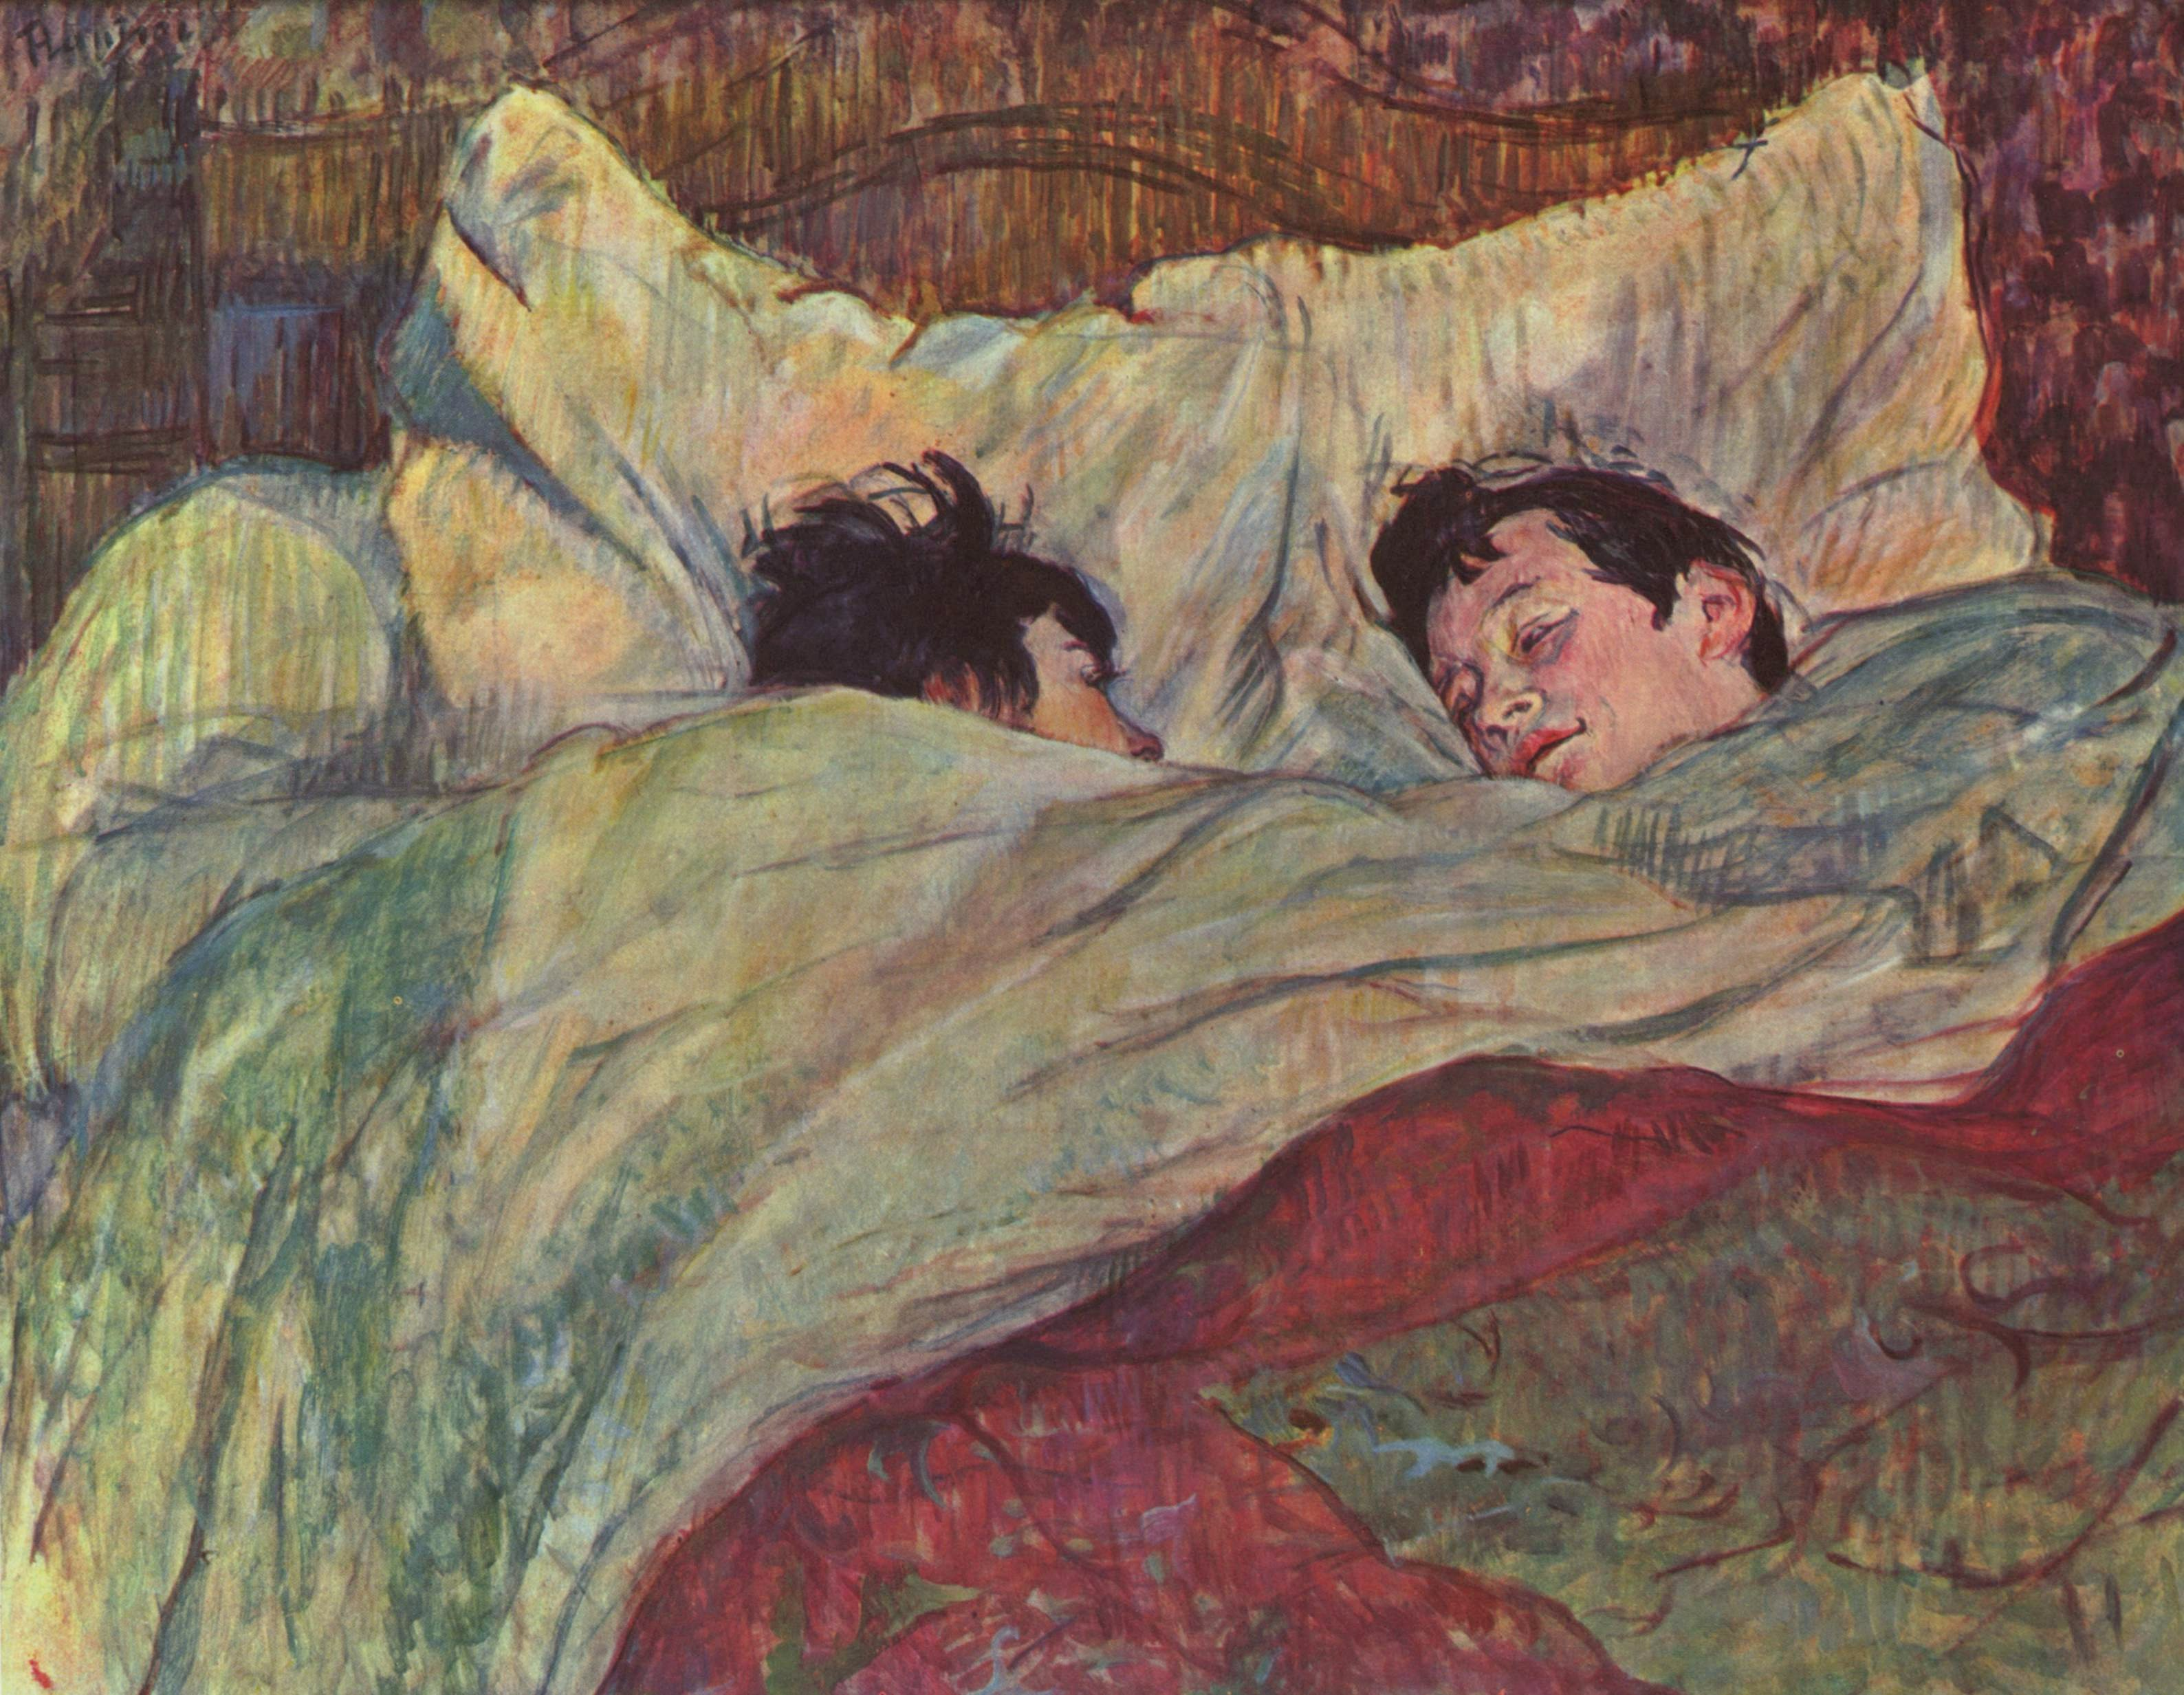 In bed, 1893 - Henri de Toulouse-Lautrec - WikiArt.org: https://www.wikiart.org/en/henri-de-toulouse-lautrec/in-bed-1893